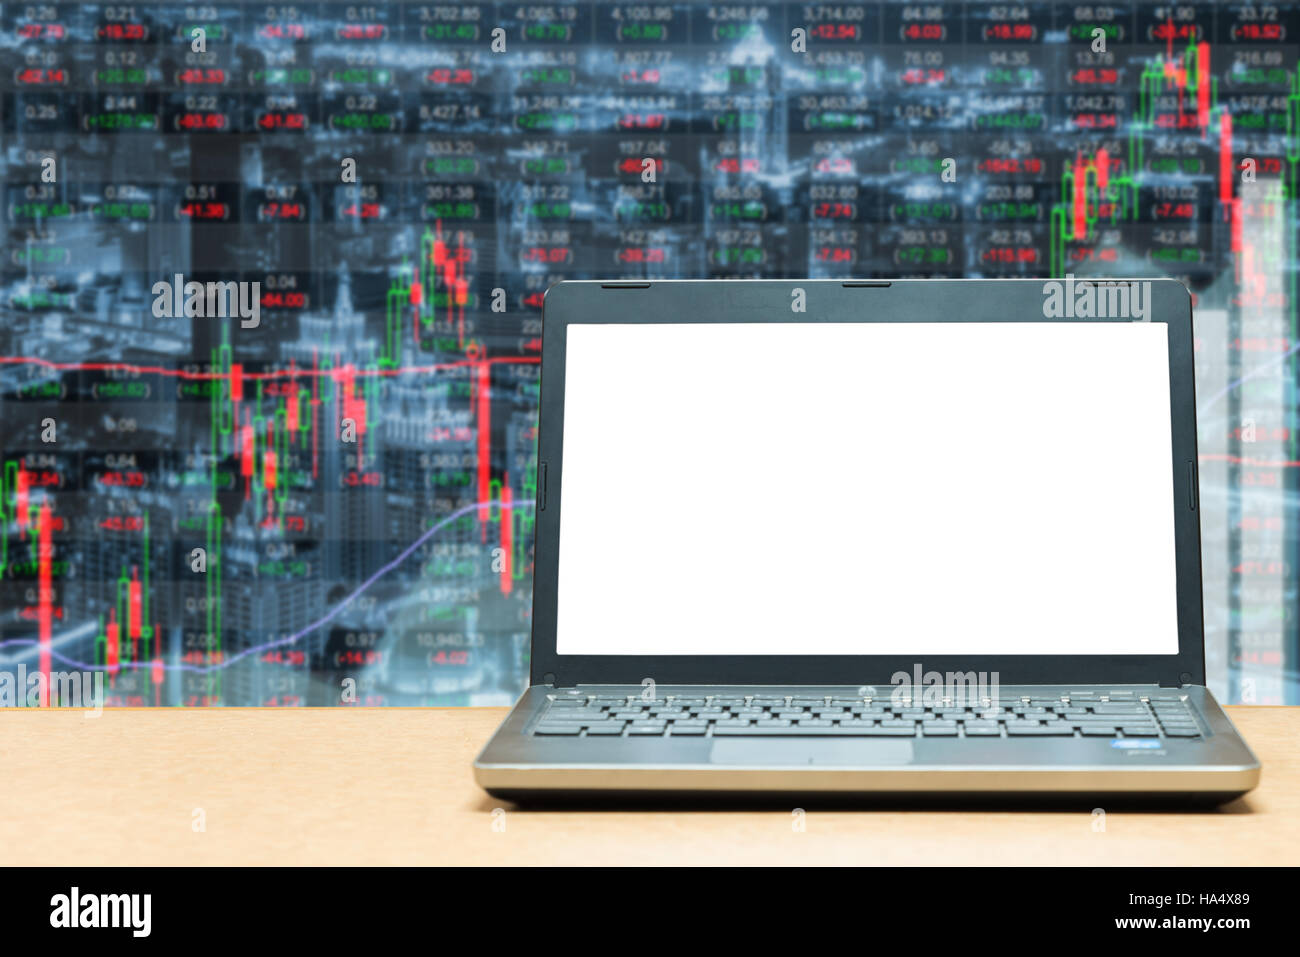 Laptop with blank screen on table with stock exchange market business trading graph. Business marketing trade concept. - Stock Image